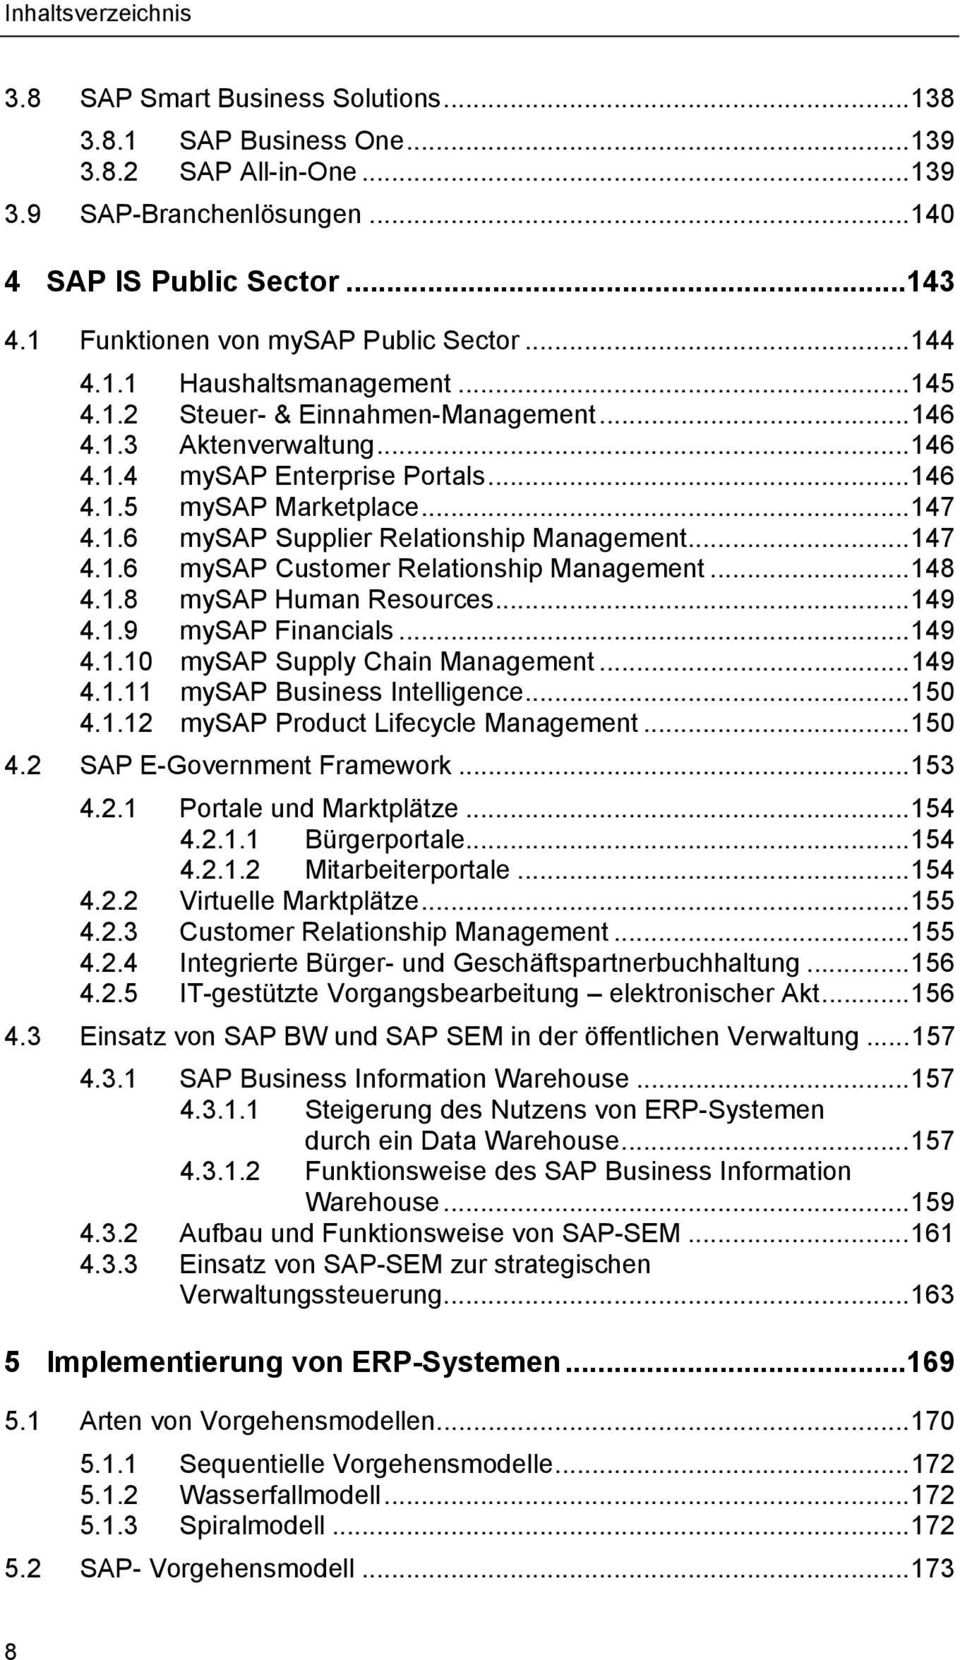 ..147 4.1.6 mysap Customer Relationship Management...148 4.1.8 mysap Human Resources...149 4.1.9 mysap Financials...149 4.1.10 mysap Supply Chain Management...149 4.1.11 mysap Business Intelligence.